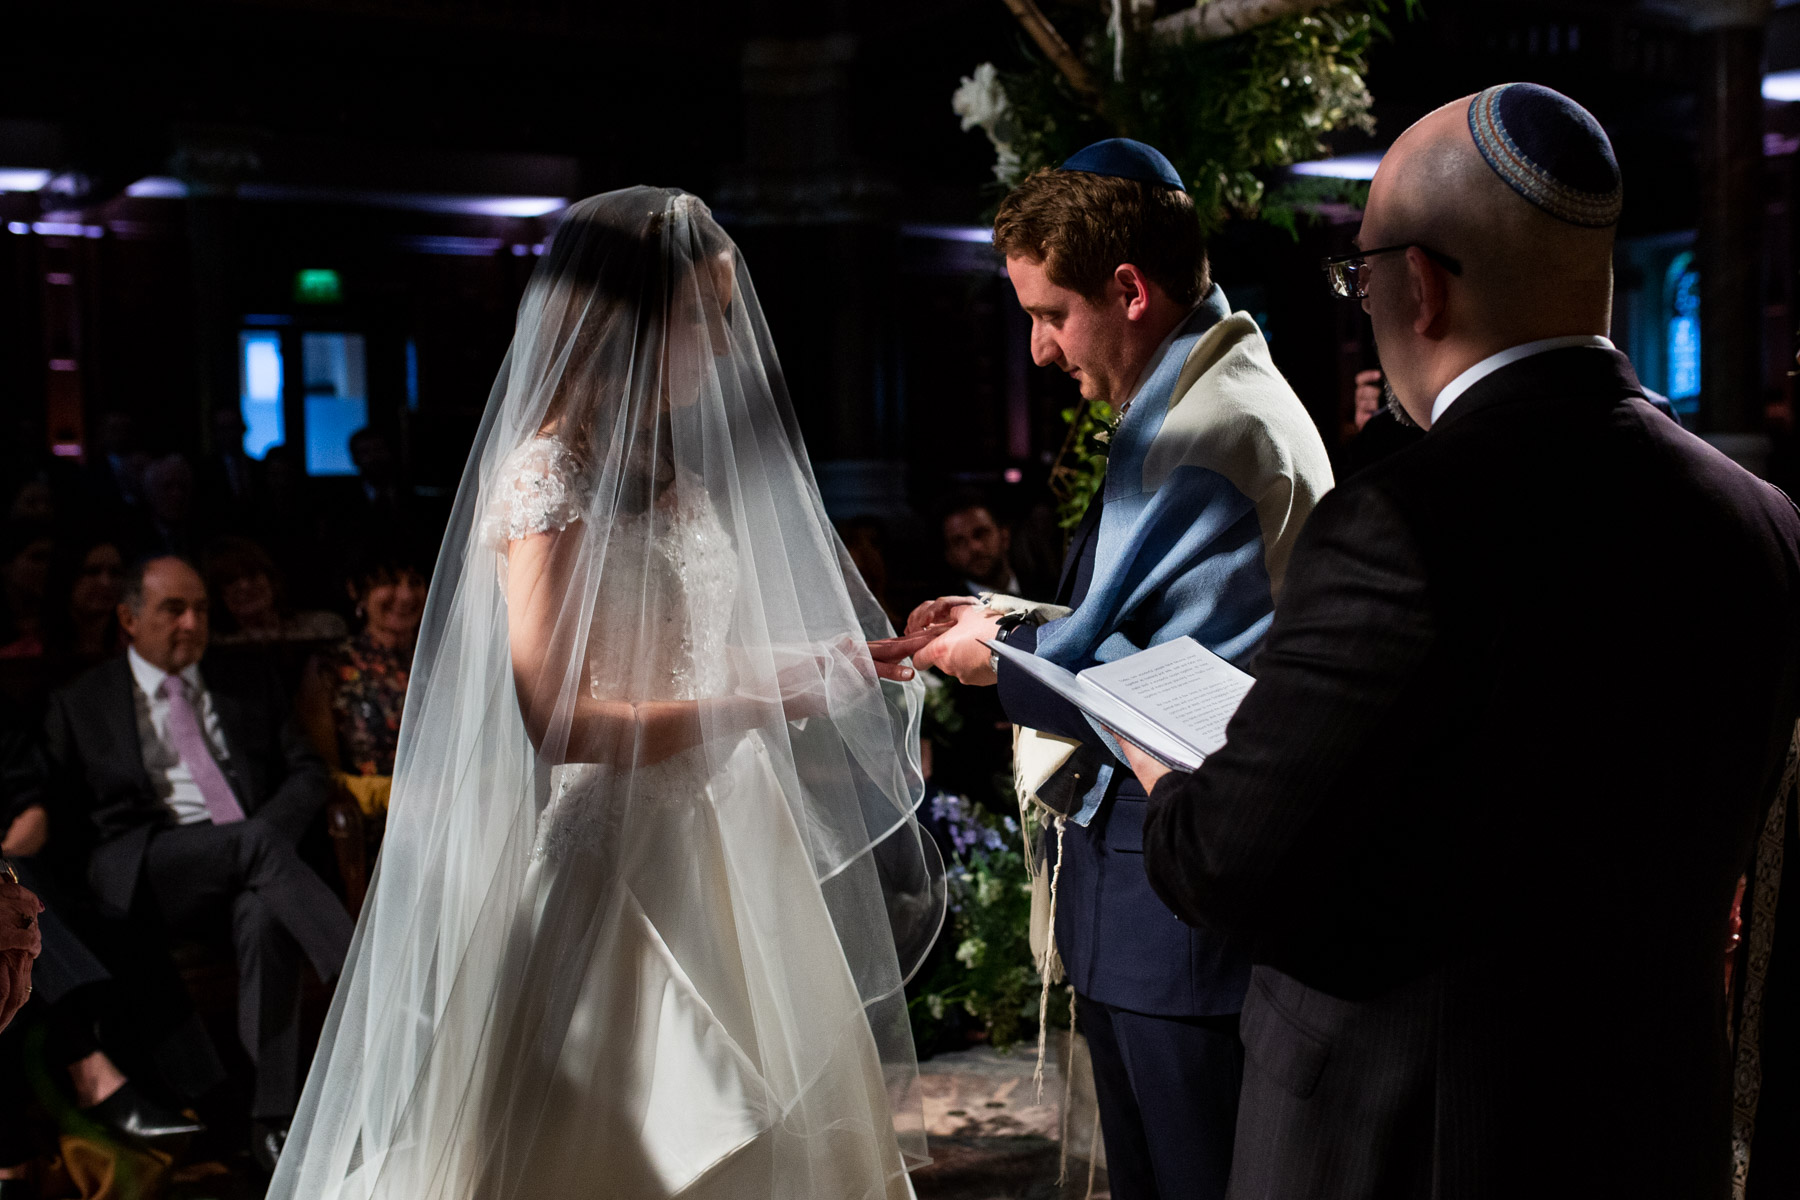 Intimate moment at wedding ceremony